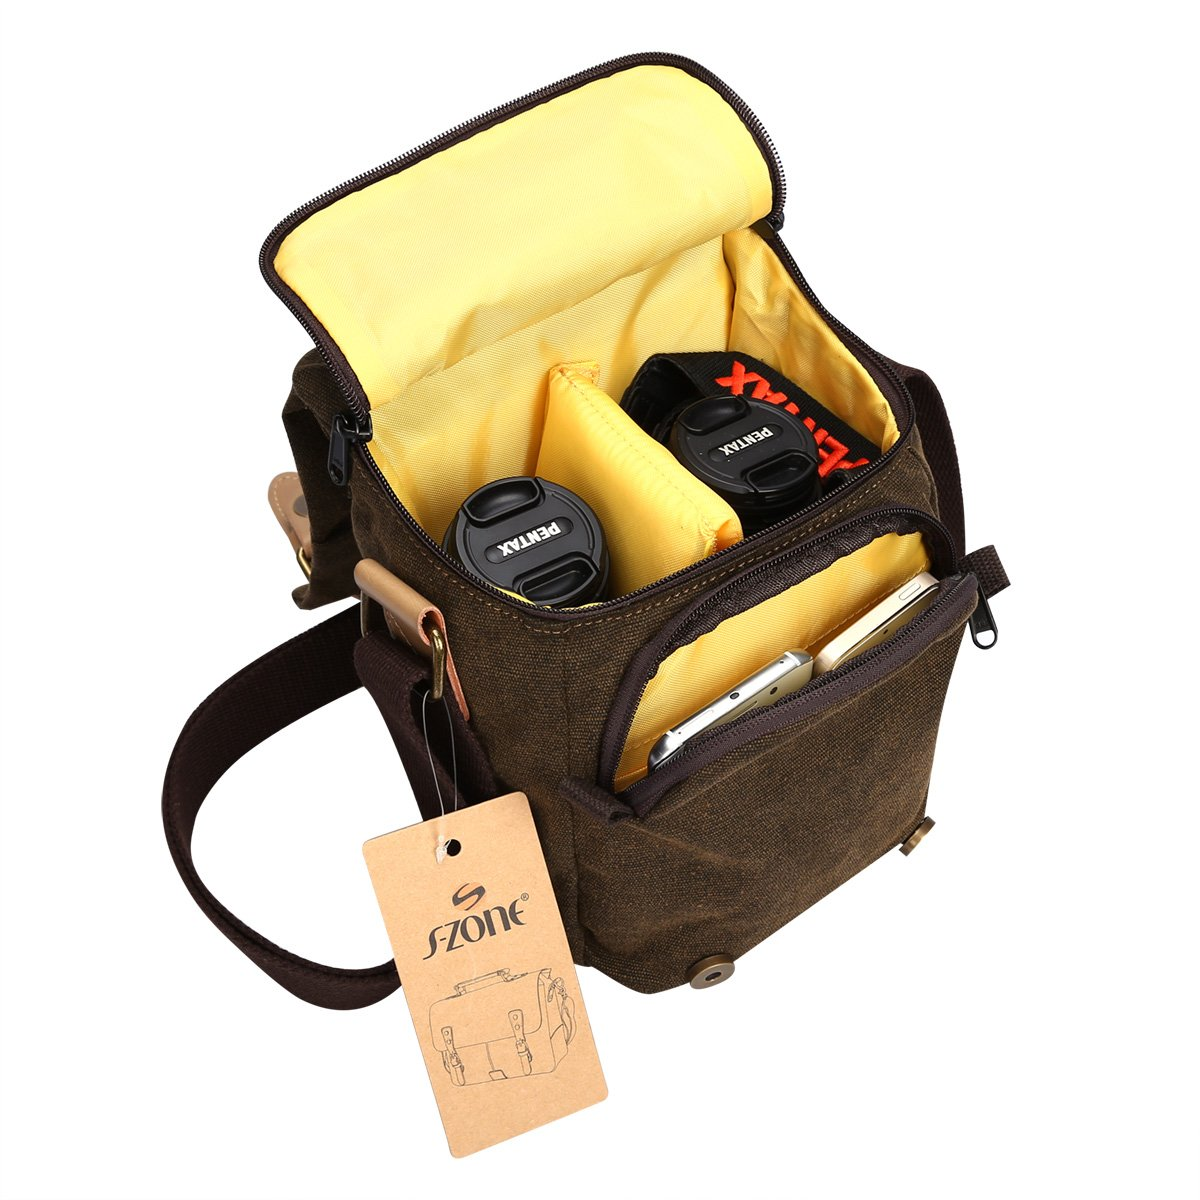 S-ZONE Vintage Waterproof Canvas Leather Trim DSLR SLR Shockproof Camera Shoulder Messenger Bag 4